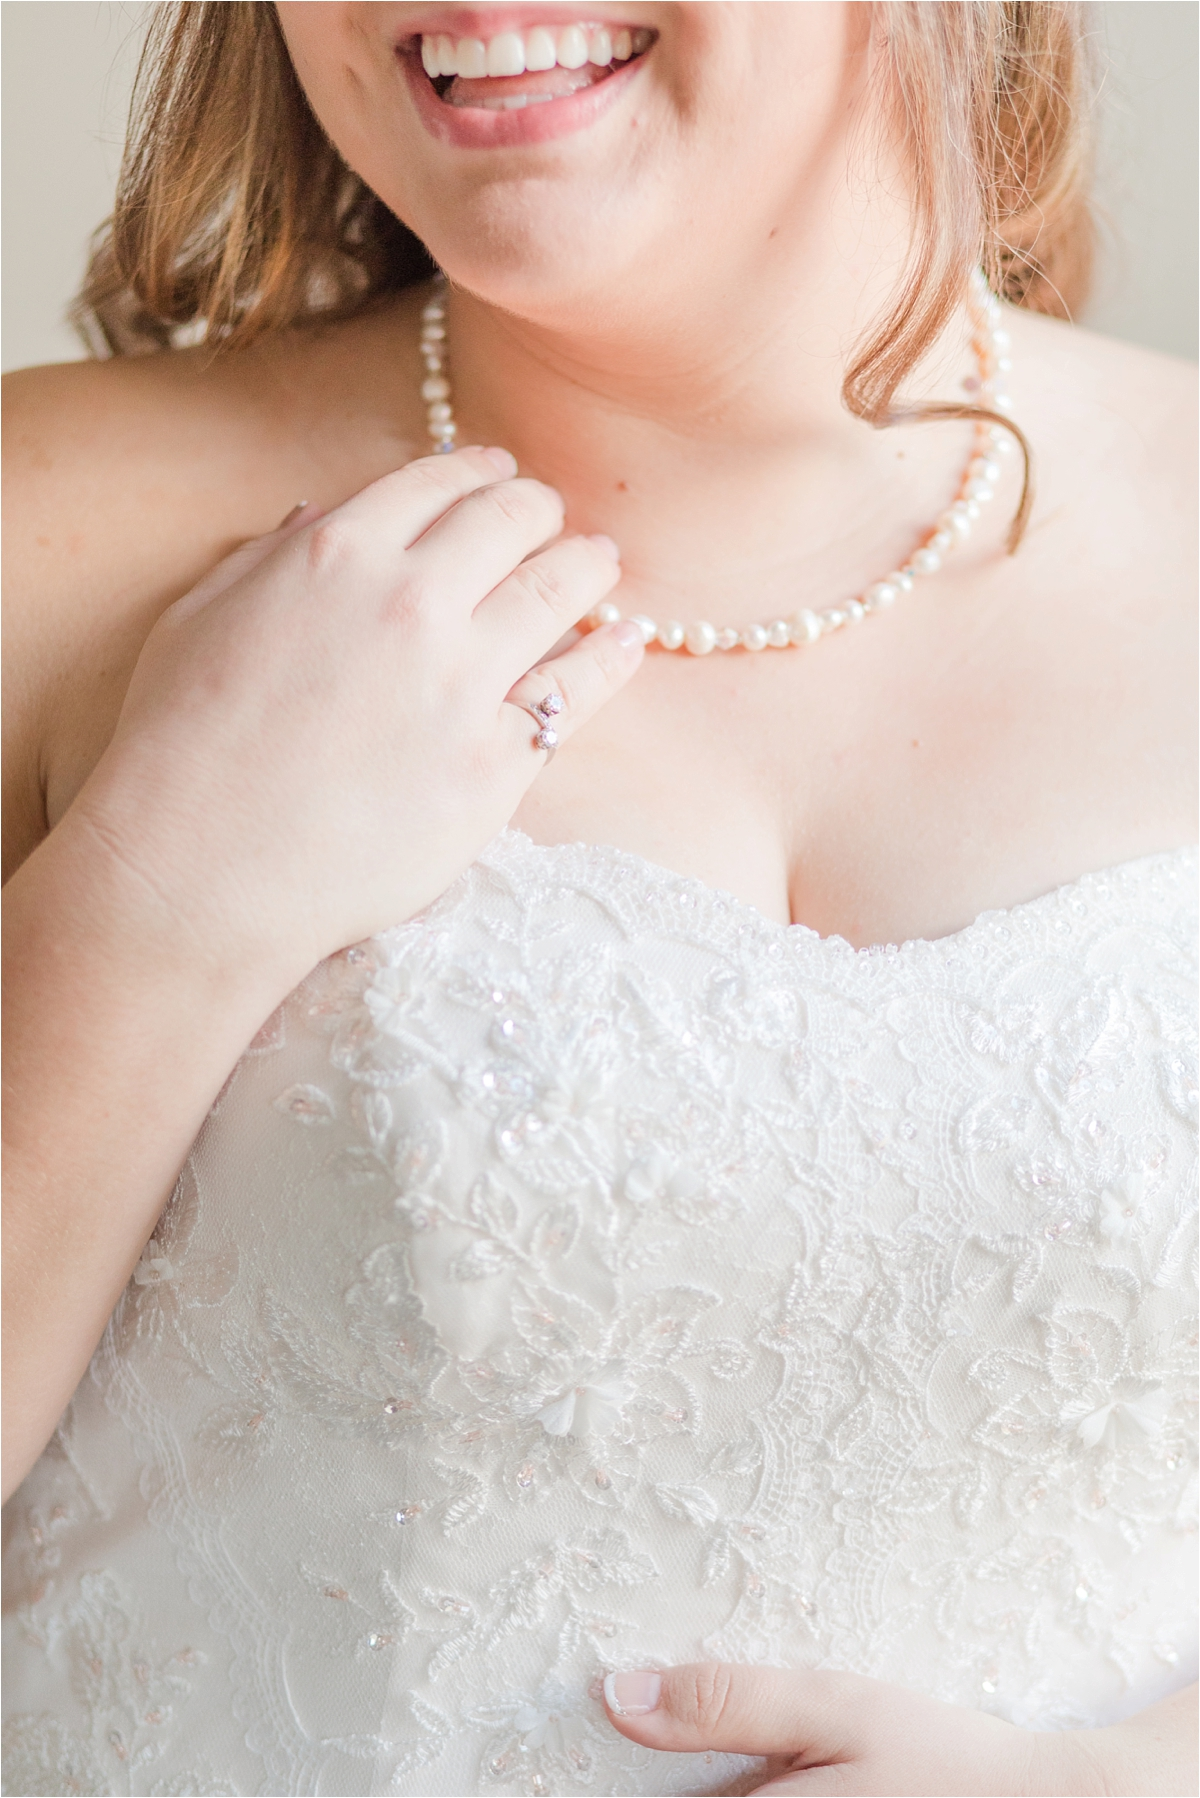 bridal-portraits-photos-bride-alabama-wedding-photographer-putting-jewelry